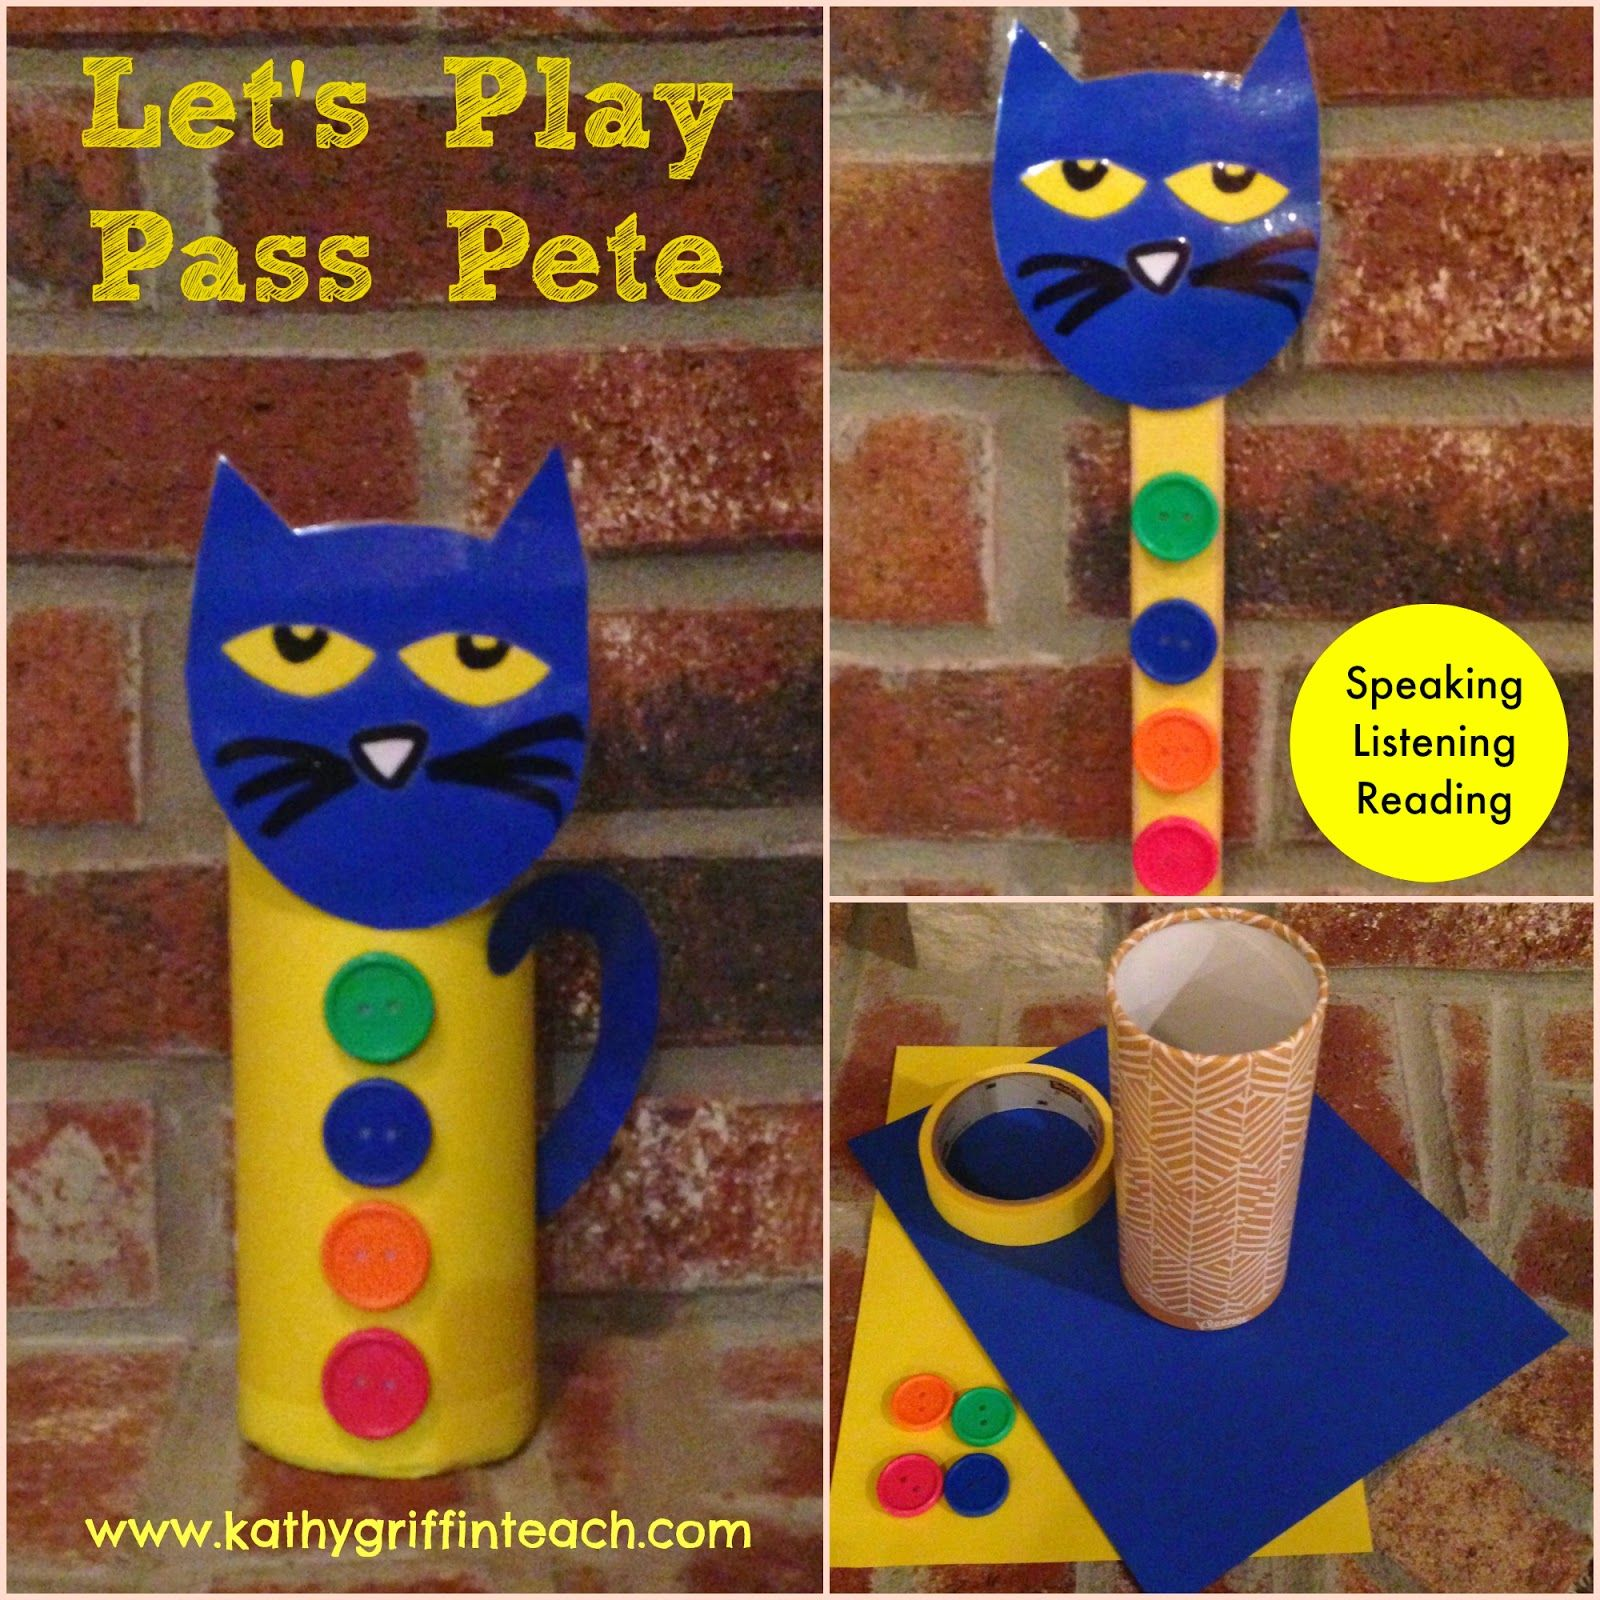 Do you need a fun activity for Back to School? I LOVE Pete